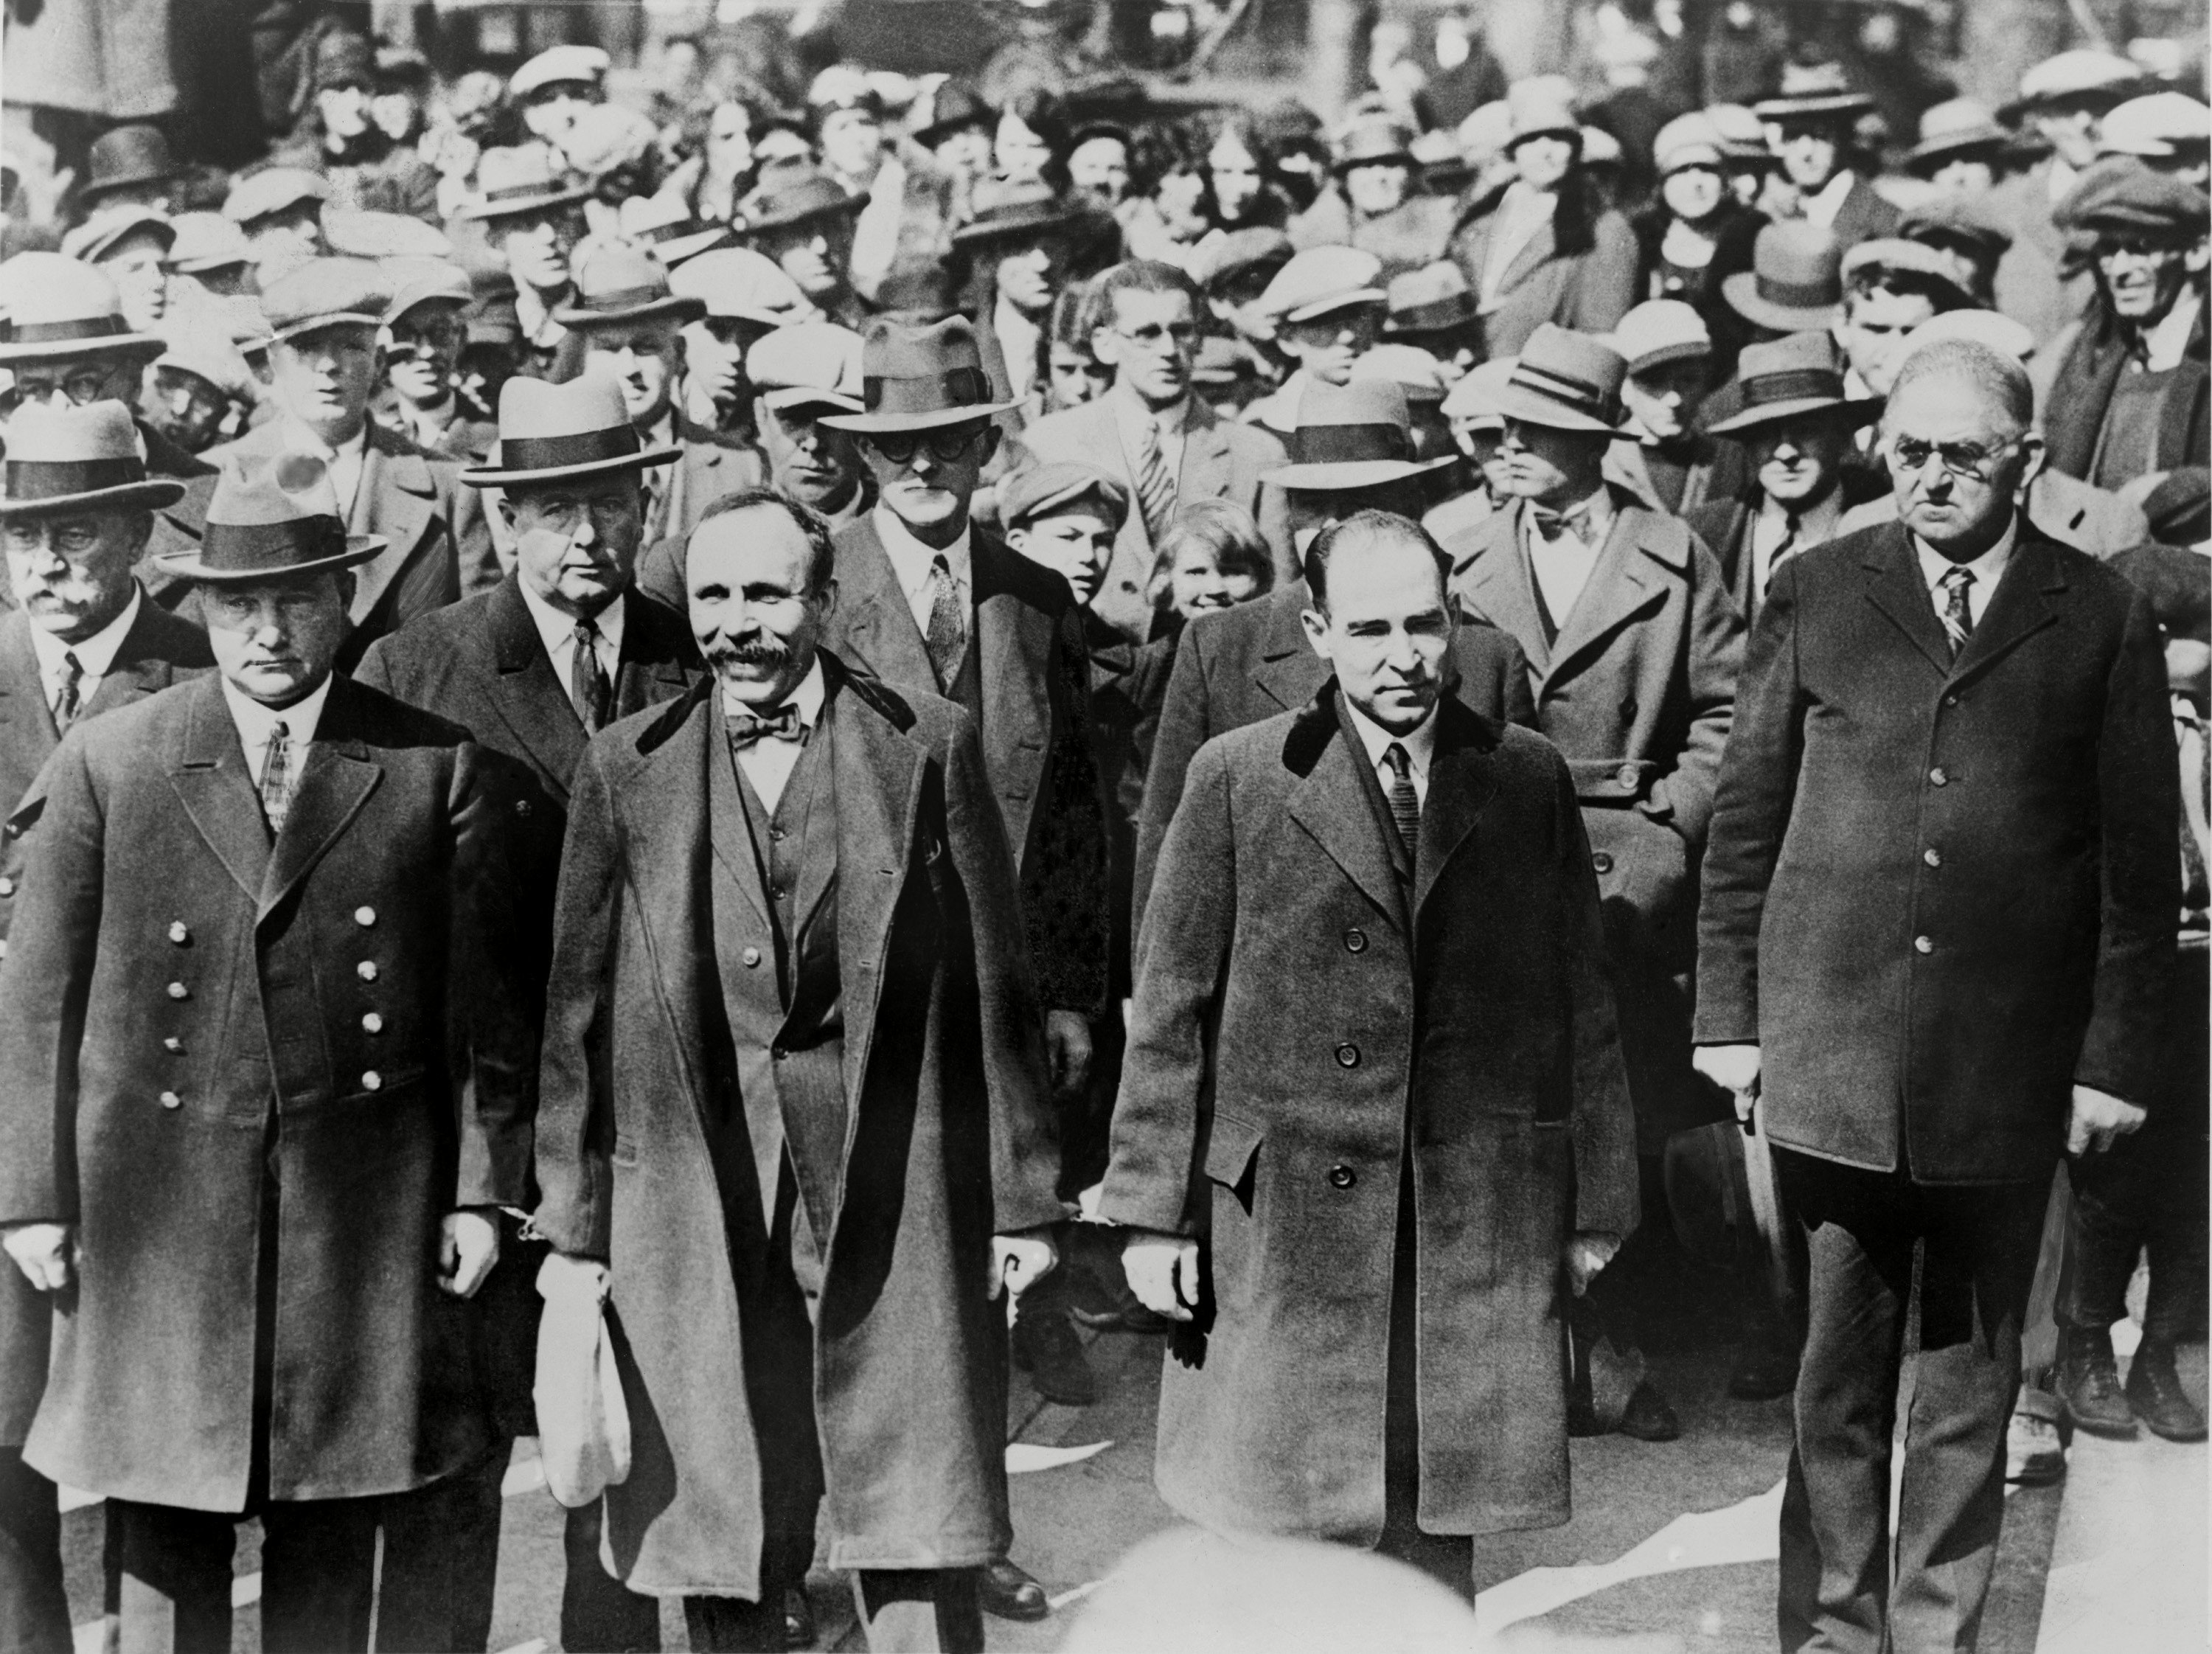 Mandatory Credit: Photo by Everett/Shutterstock (10277914a) Bartolomeo Vanzetti (left) and Nicola Sacco, manacled together before they received death sentences for payroll guard murder they were convicted of seven years earlier. They are surrounded by heavy guard and onlookers, as they enter the courthouse at Dedham, Massachusetts. Historical Collection